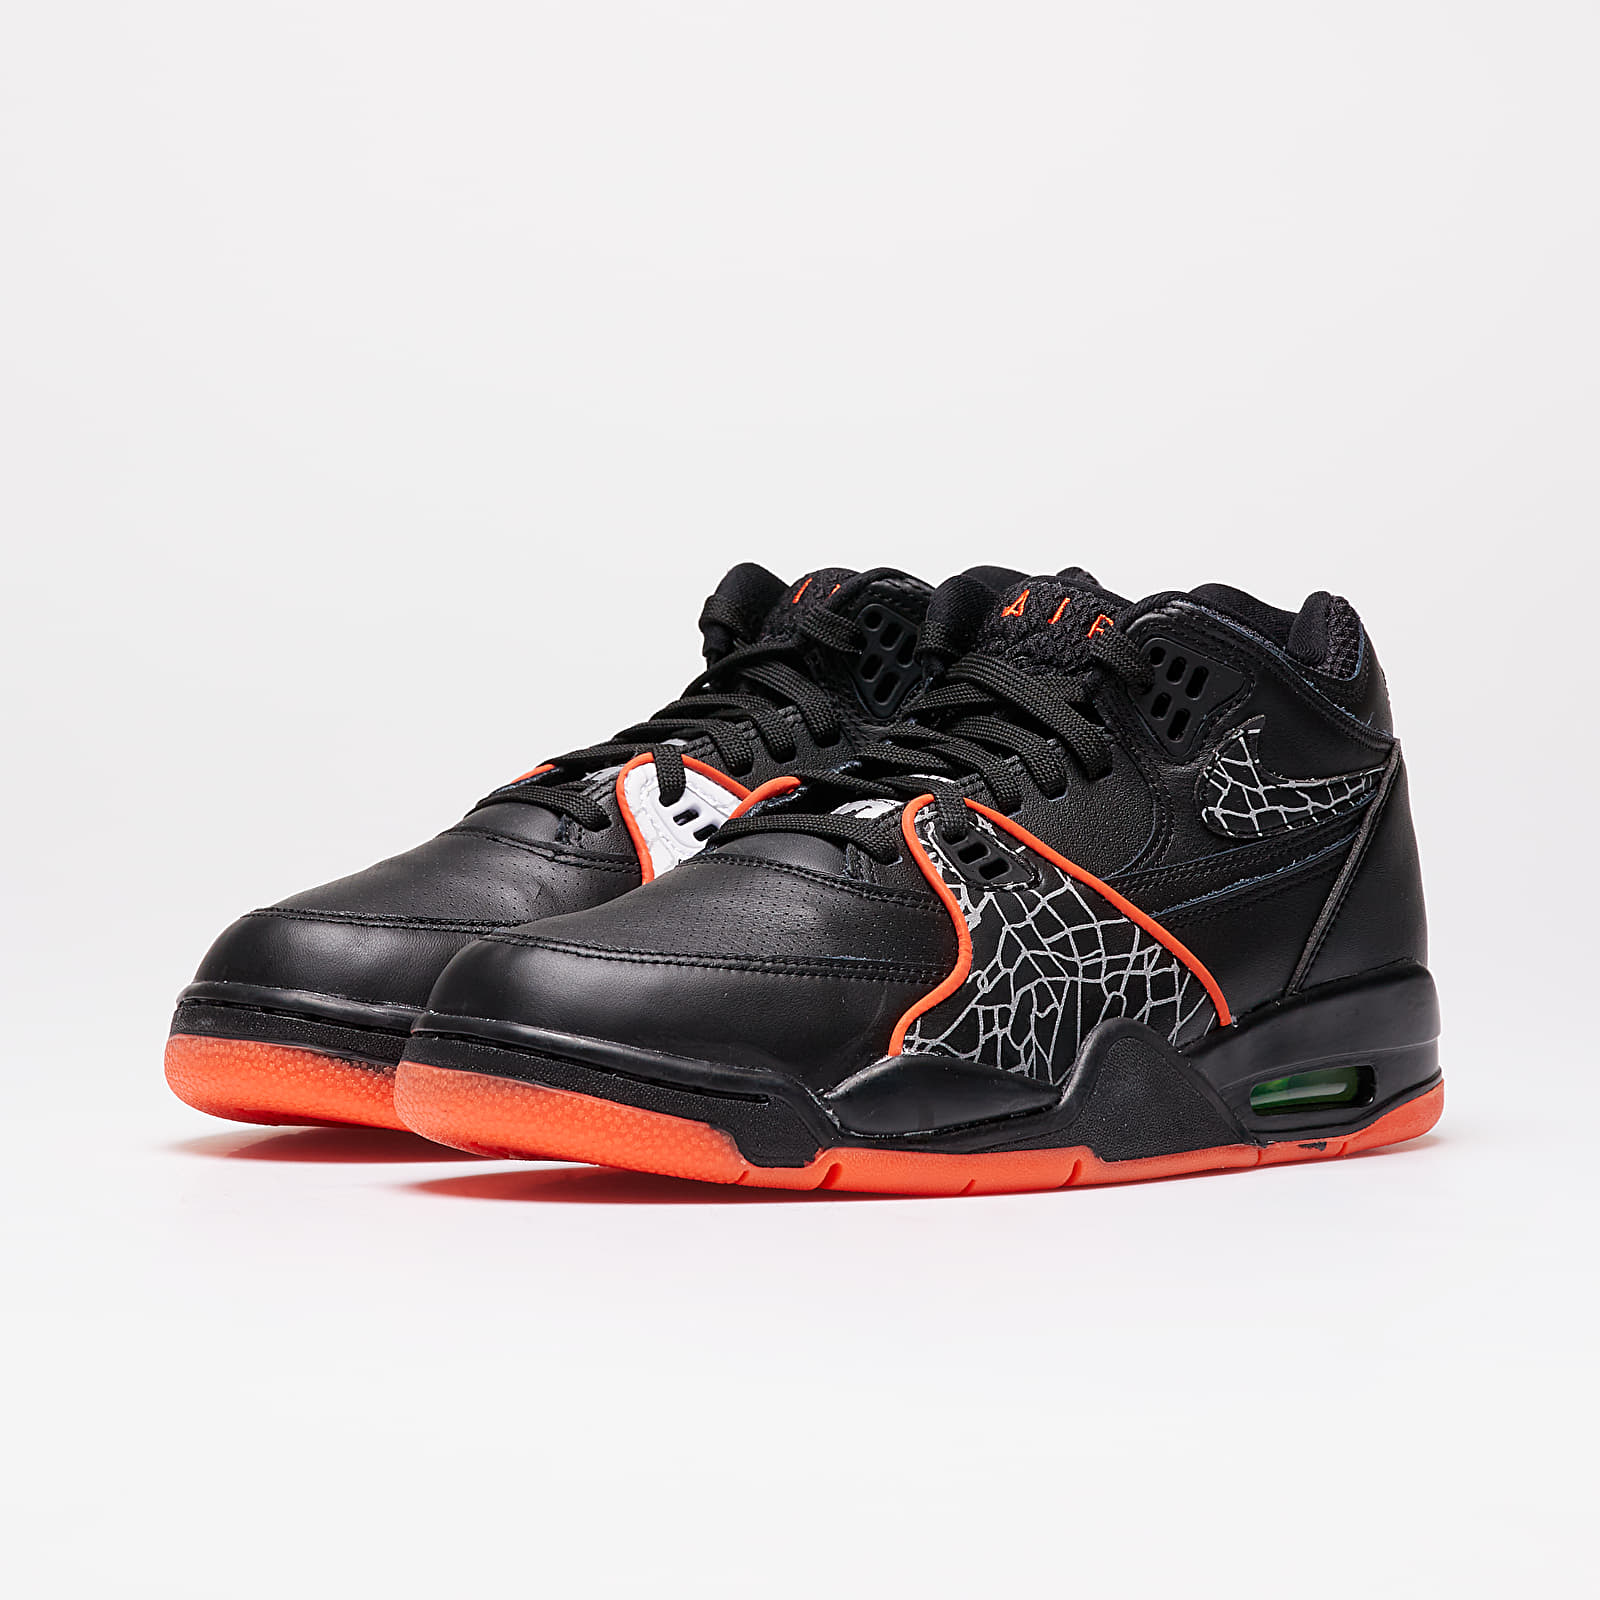 Nike Air Flight 89 QS Black Orange Blaze Green Strike White | Footshop